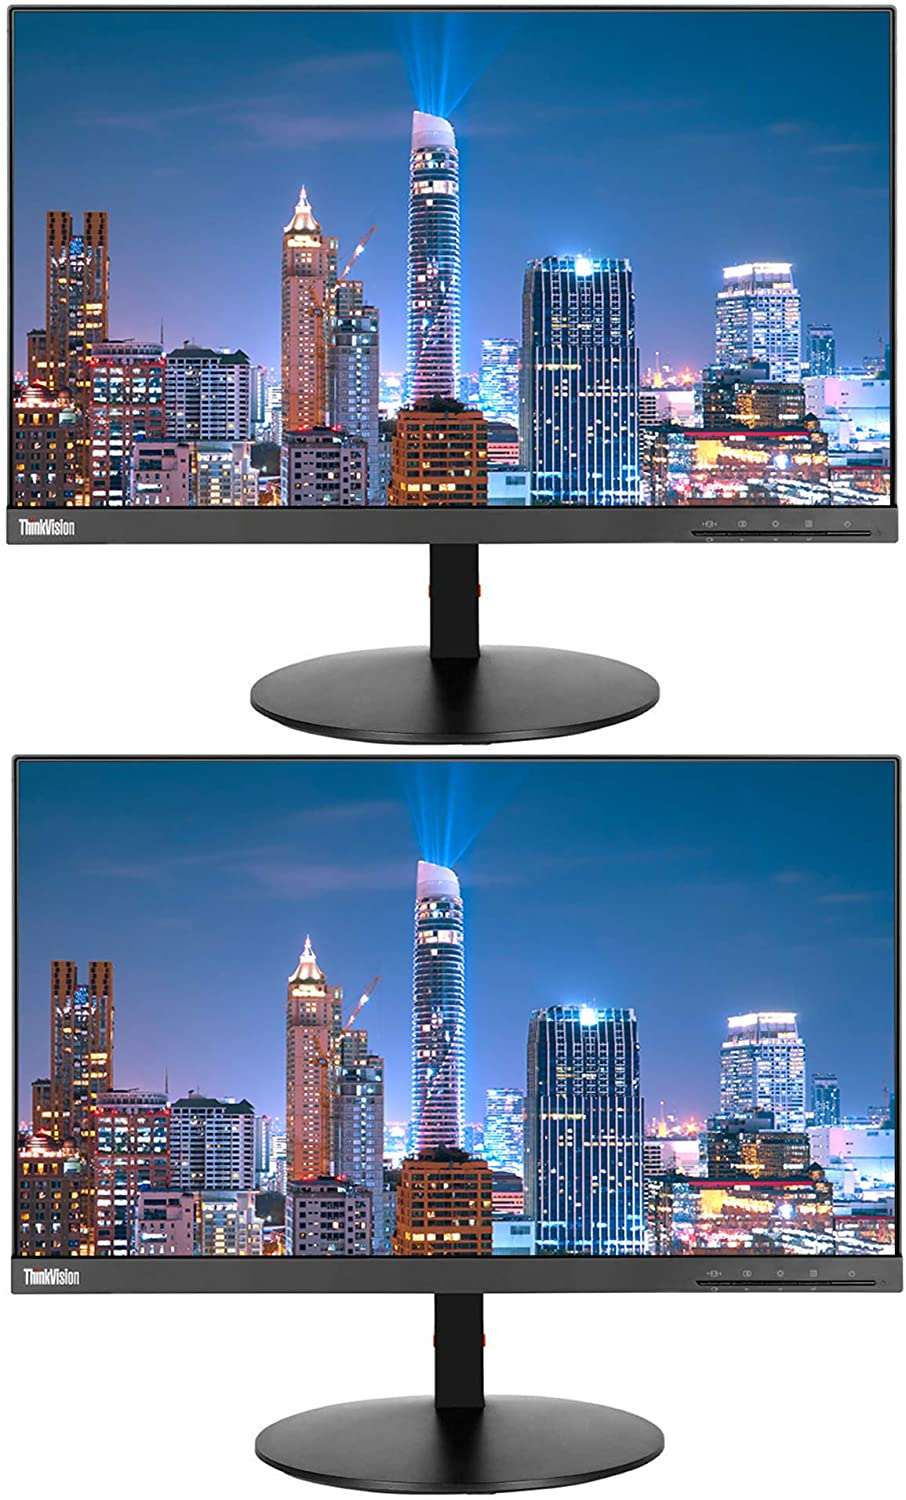 Lenovo ThinkVision T22i-10 21.5 Inch FHD (1920 x 1080) LED Backlit LCD IPS Monitor (61A9MAR1US) 2-Pack